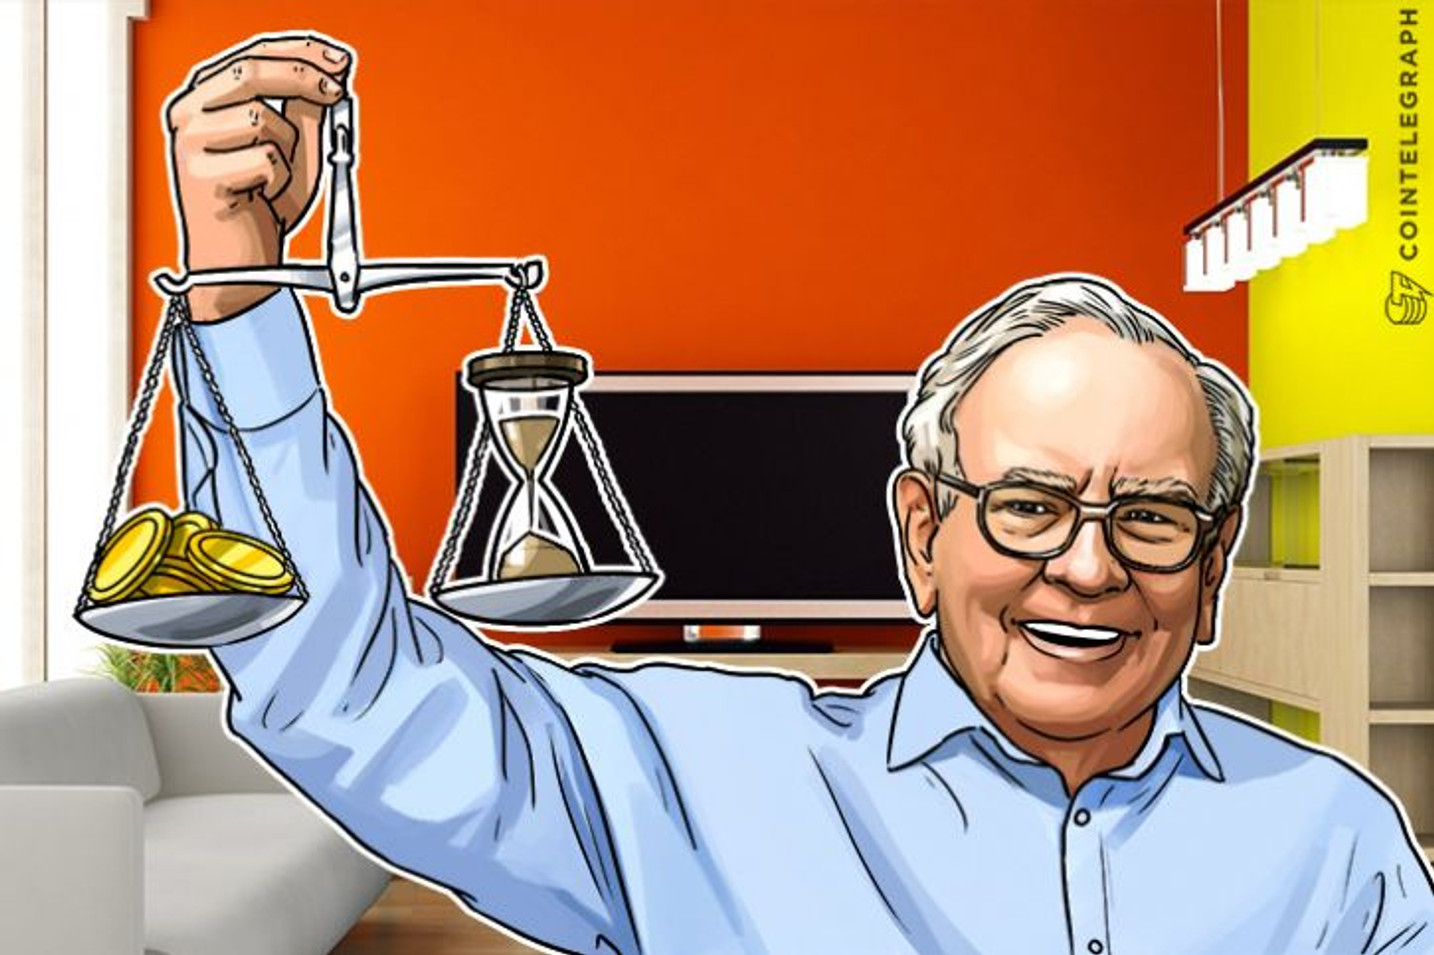 Warren Buffet's Berkshire Hathaway Collides With Blockchain at Omaha Conference